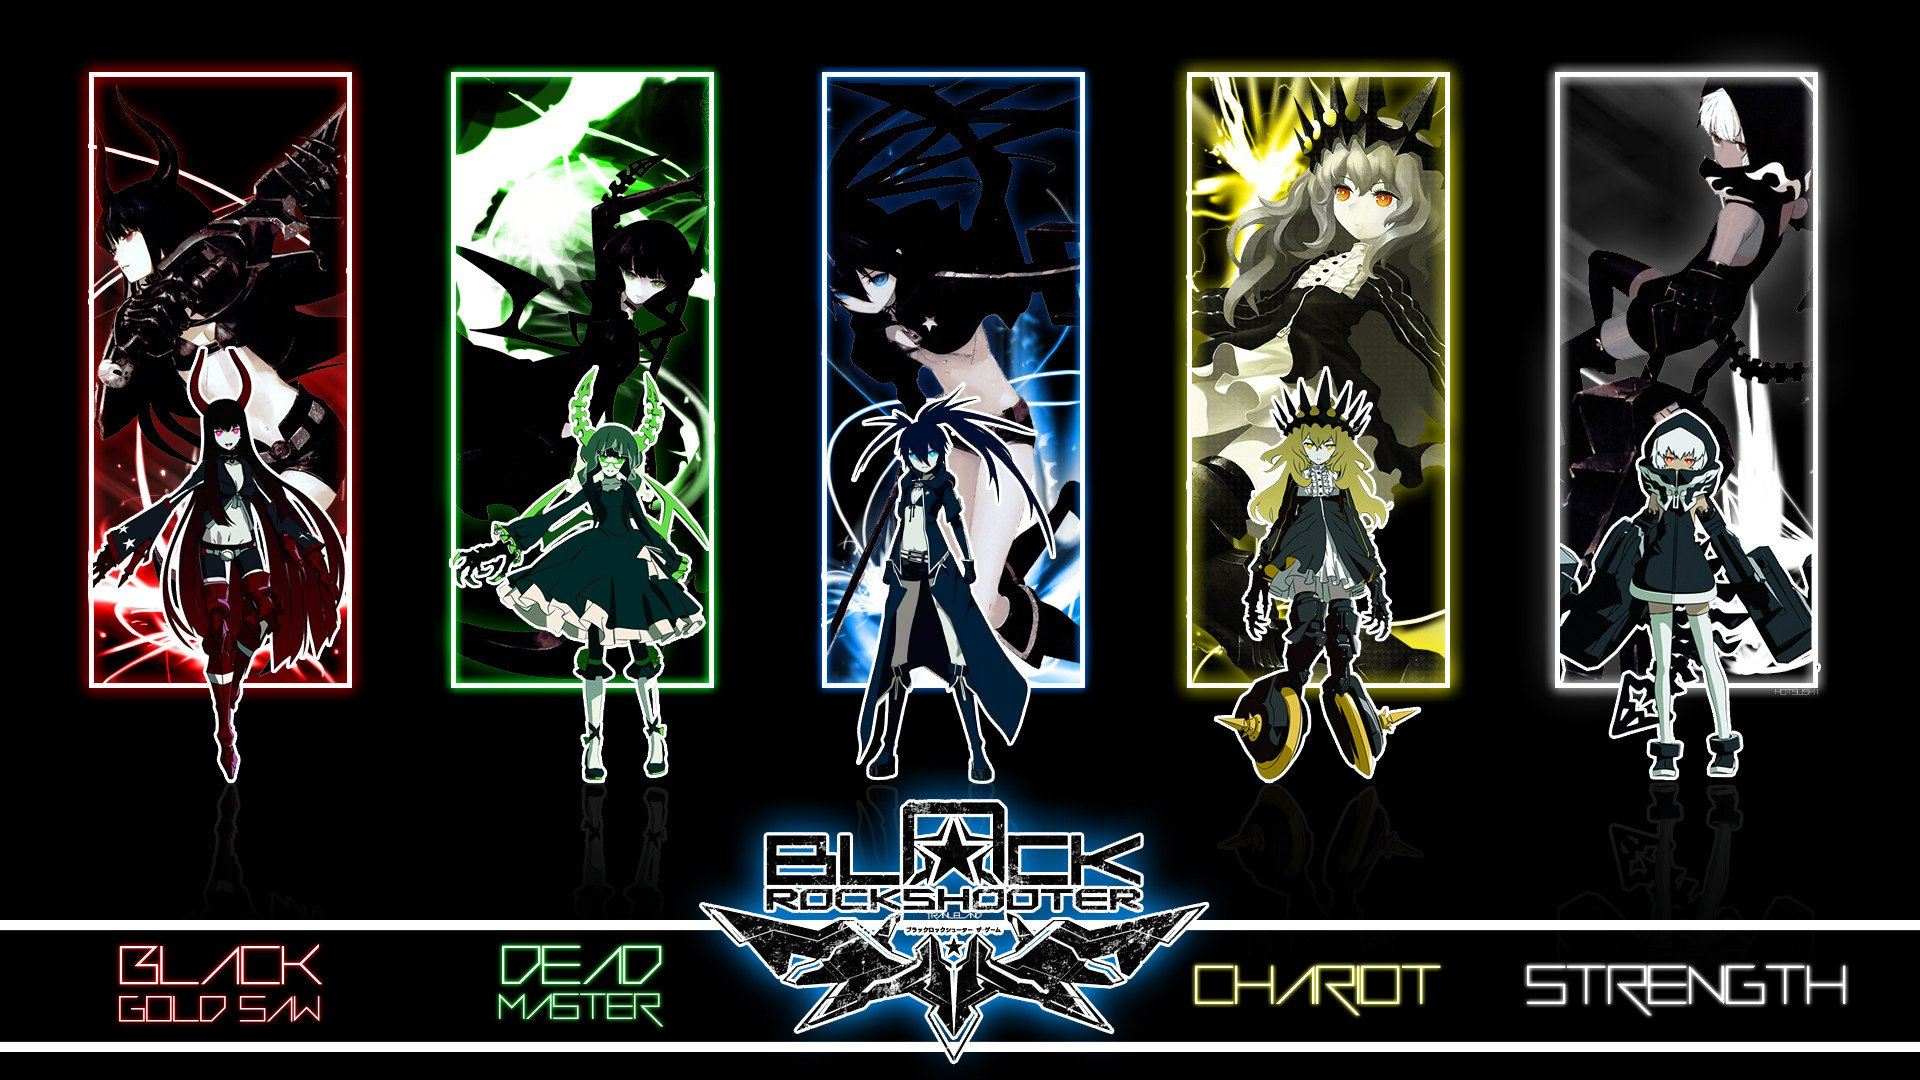 71 Strength Black Rock Shooter HD Wallpapers Background Images 1920x1080